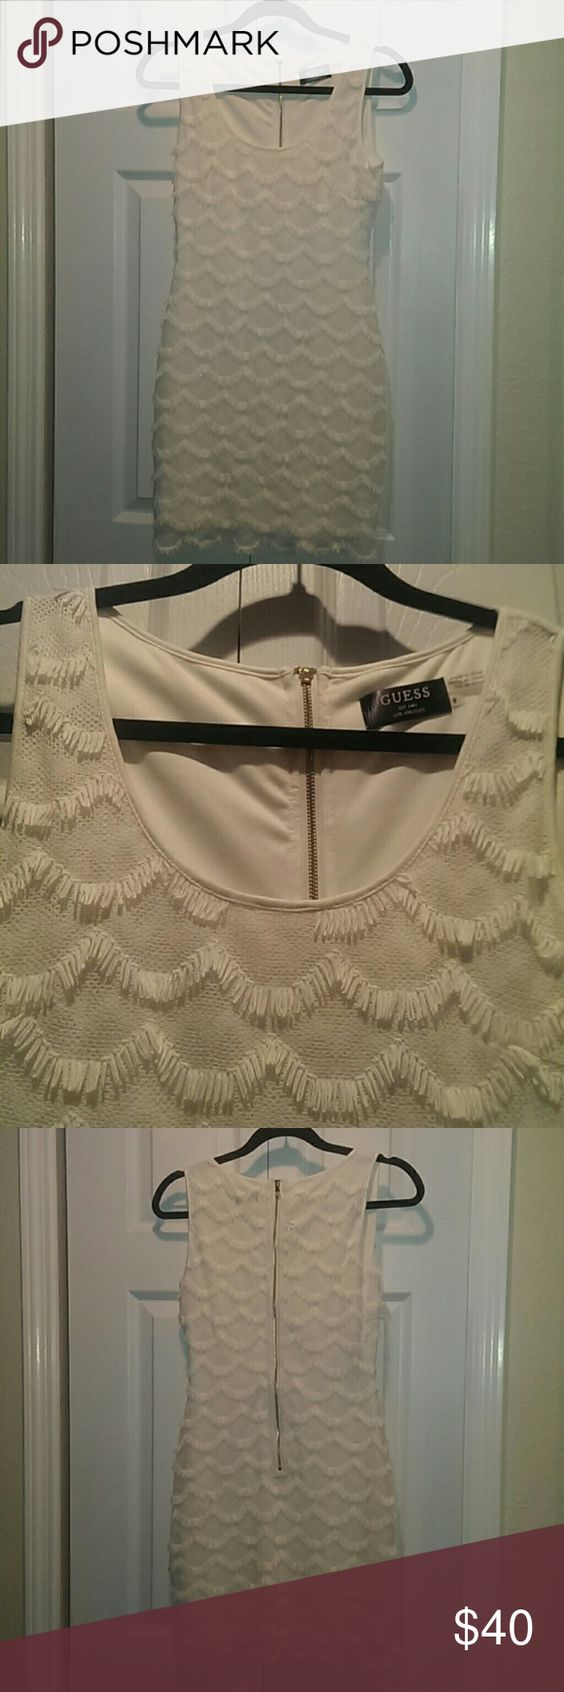 Cream Guess Dress Only worn once beautiful cream colored Guess Dress Guess Dresses